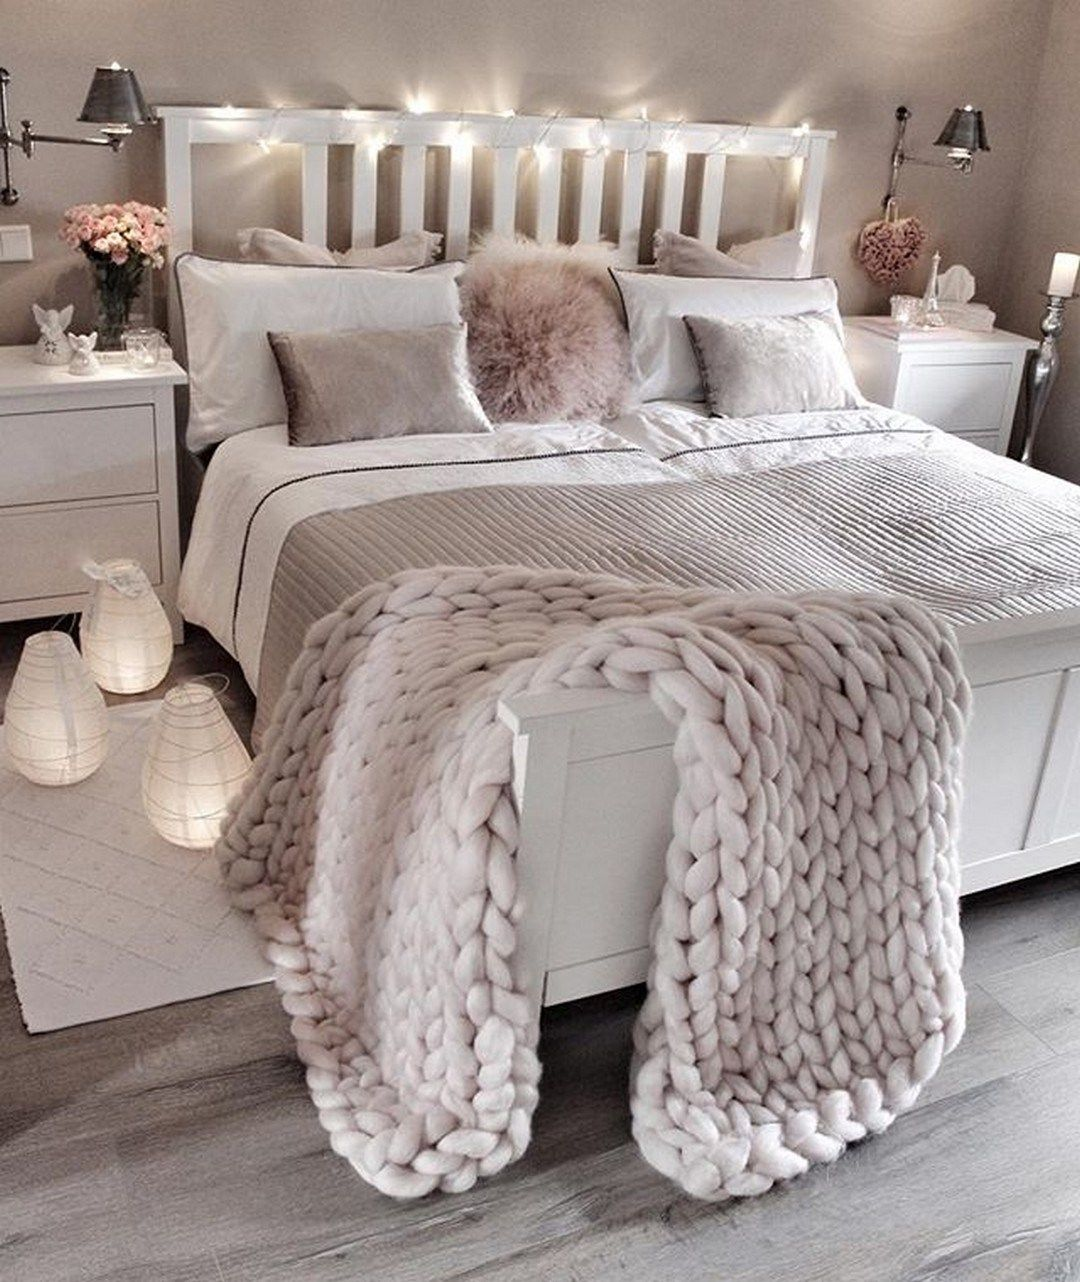 21 Cosy Winter Bedroom Ideas: Best Ideas To Make Your Bedroom Extra Cozy And Romantic